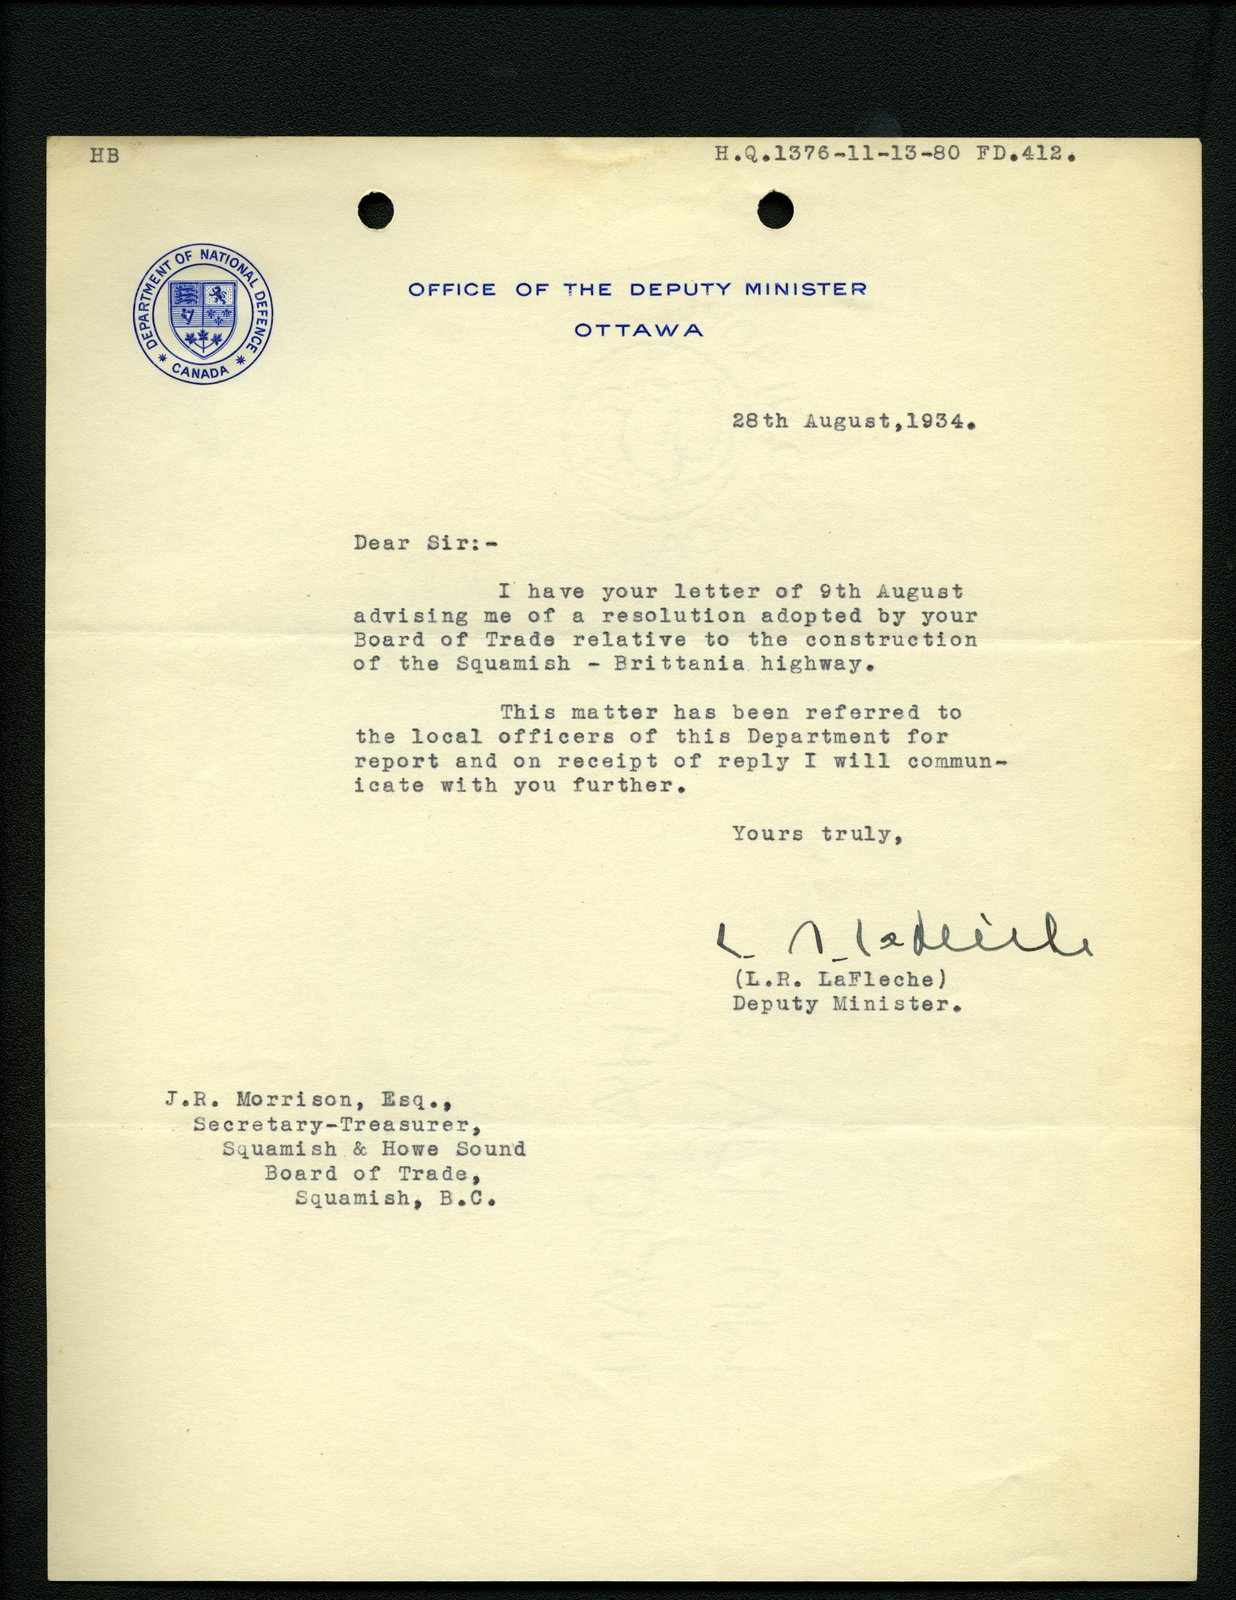 Letter to J.R. Morrison, Secretary-Treasurer, Squamish and Howe Sound Board of Trade from L.R. LaFleche, office of Deputy Minister. Re: Highway from Squamish to Britannia.